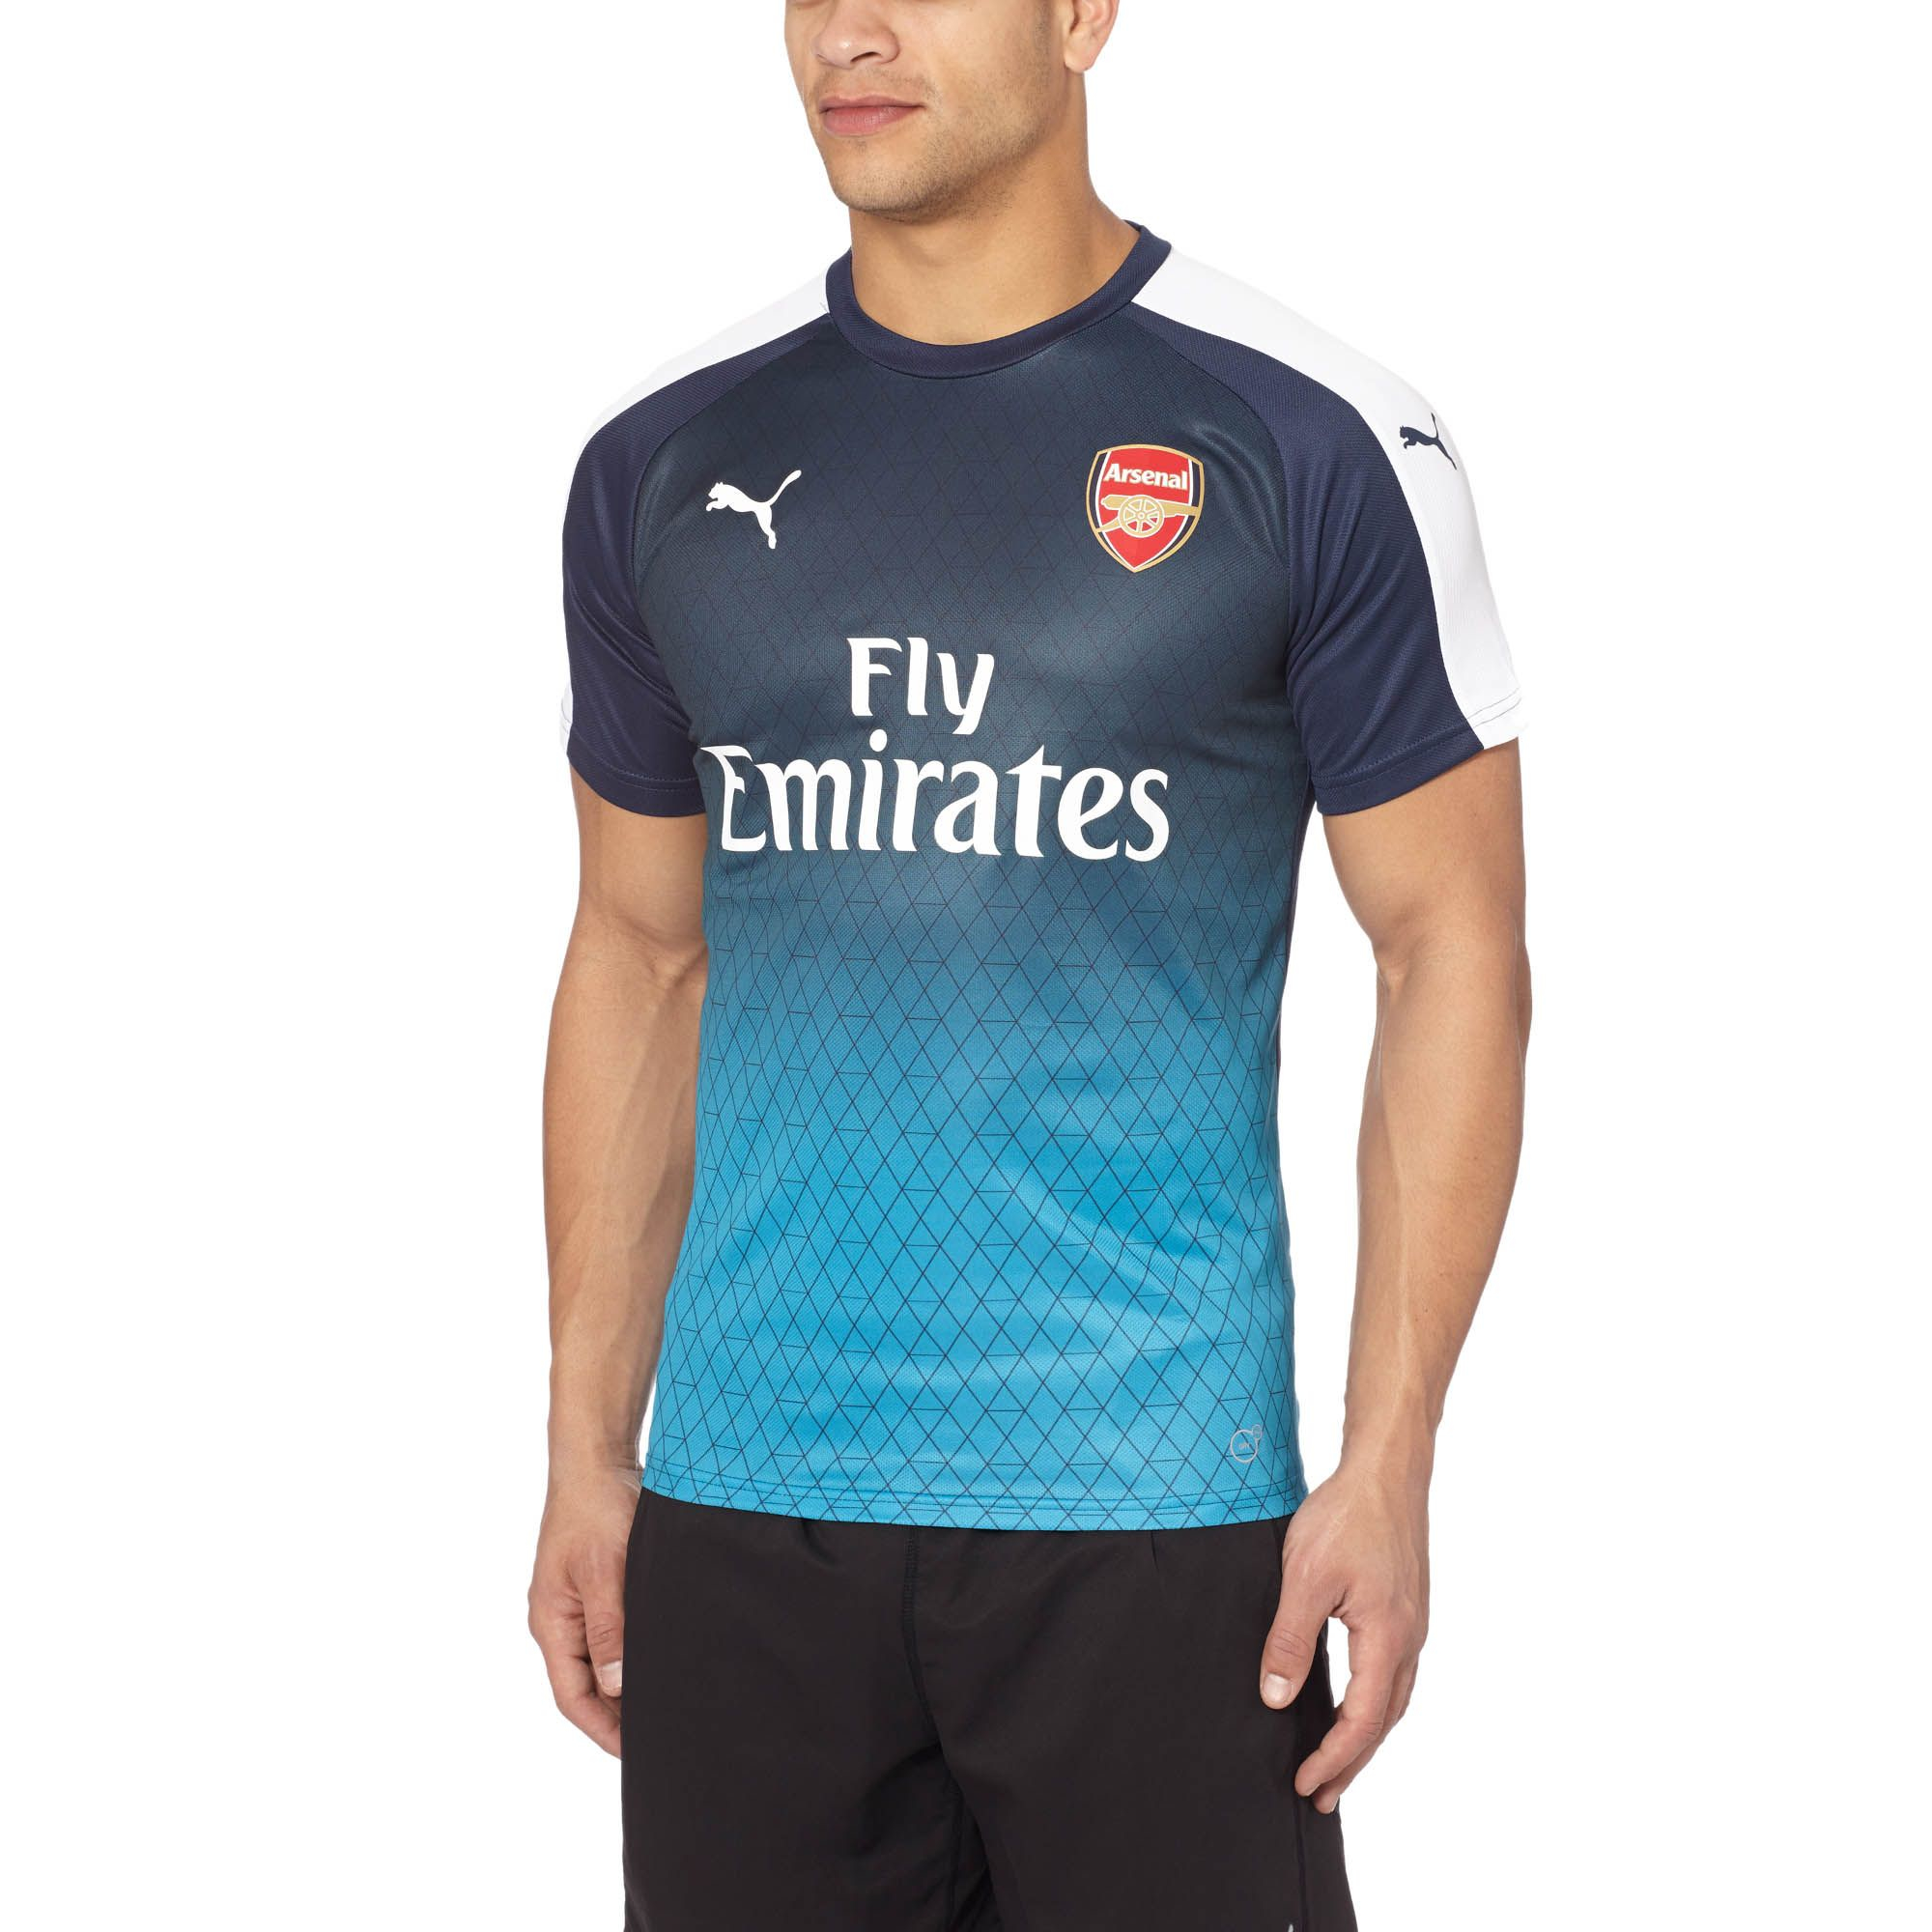 Lyst - PUMA Arsenal Stadium T-shirt in Blue for Men 31c963827